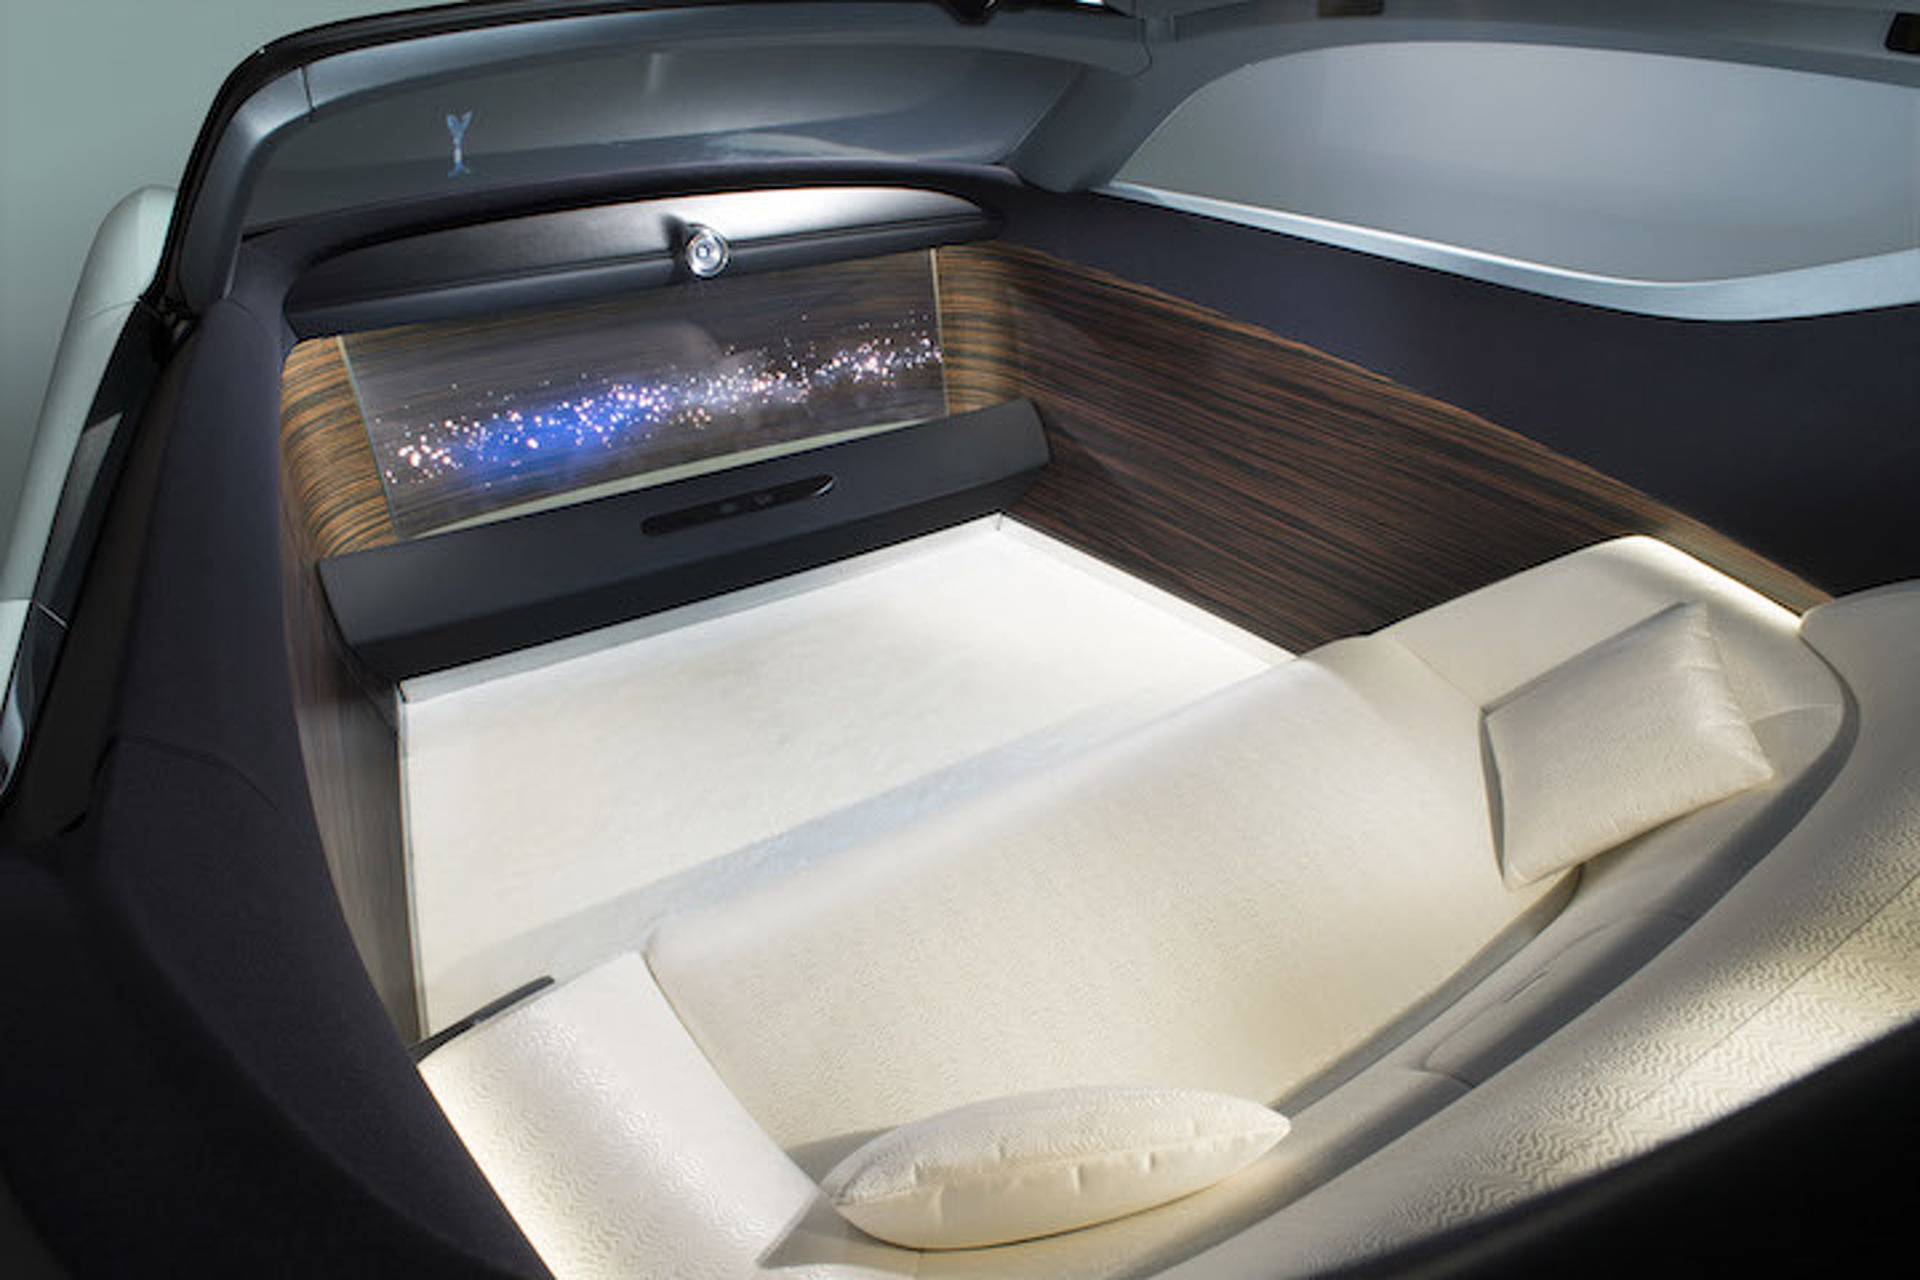 Rolls-Royce Reveals Its Electric Luxury Car of the Future